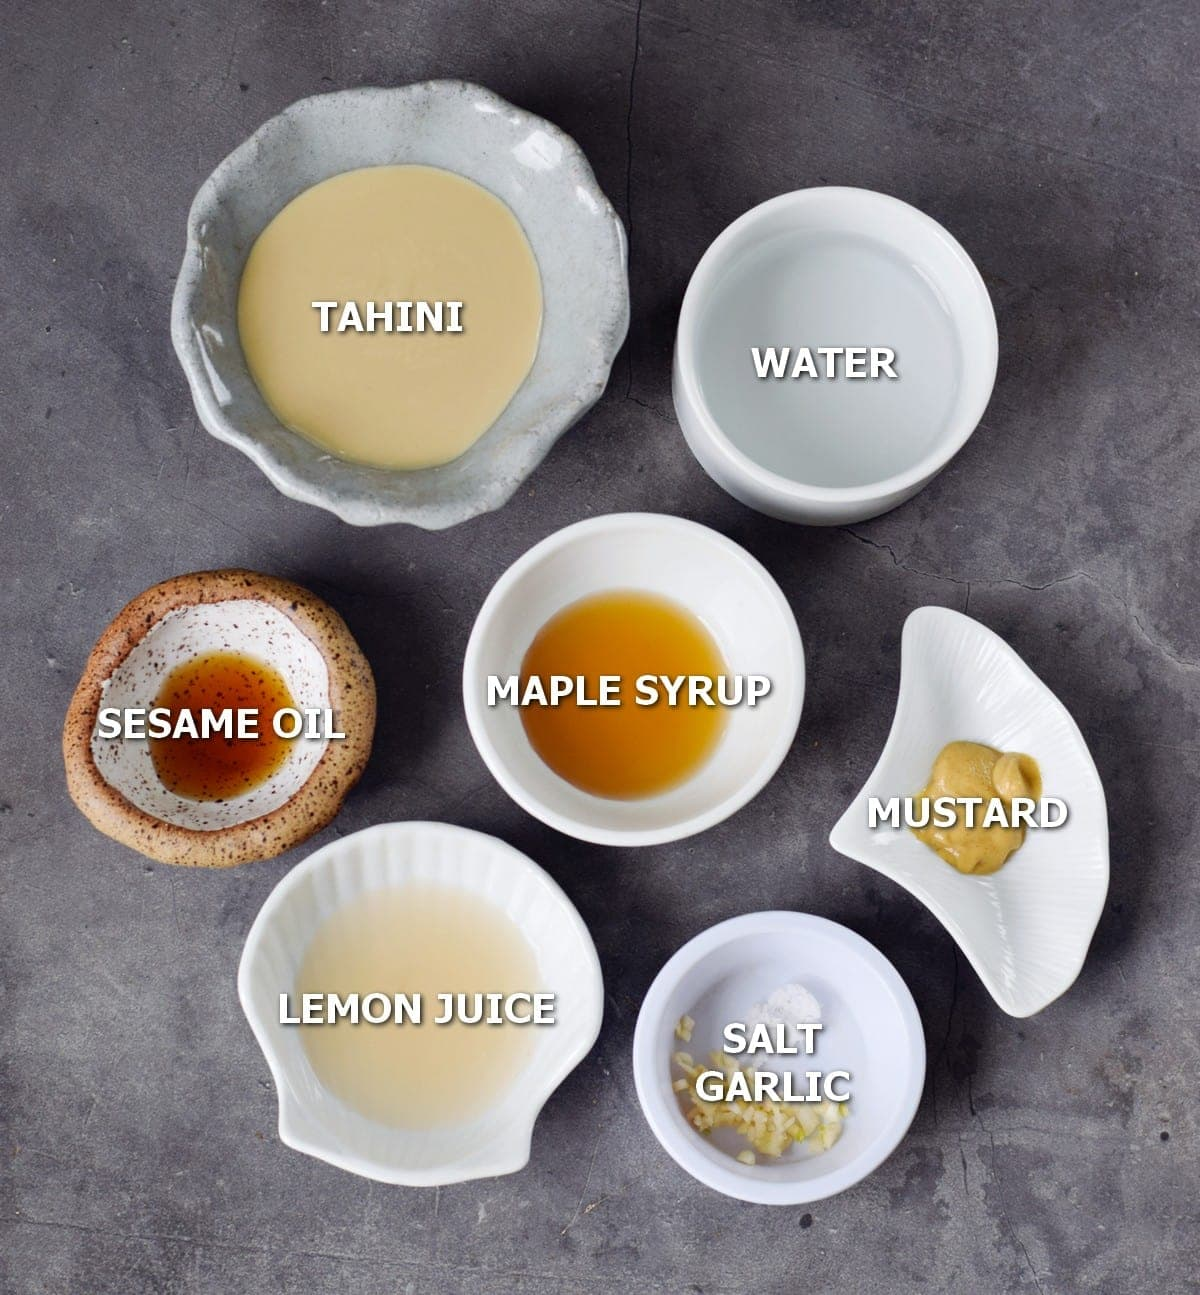 Ingredients for tahini sauce